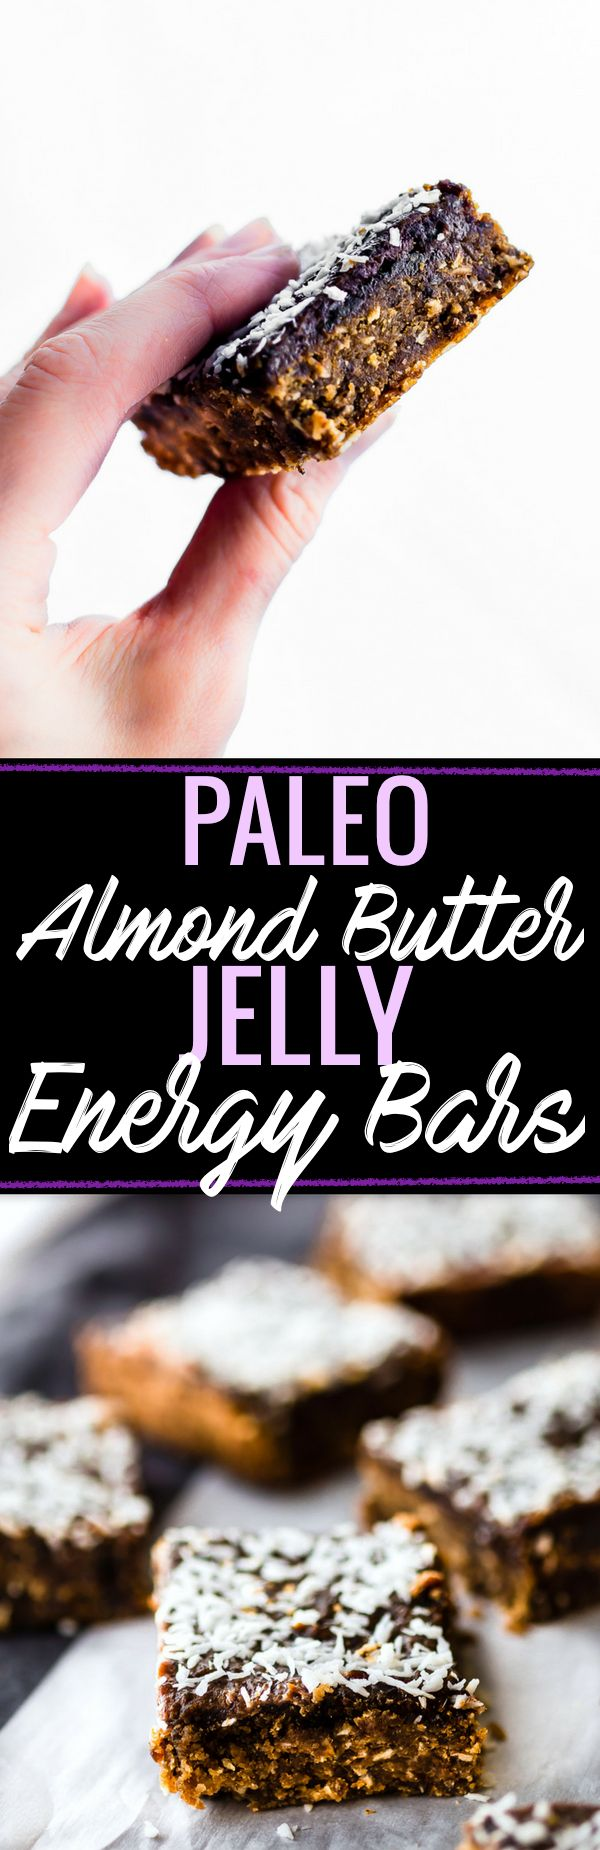 These Paleo Almond Butter Jelly Energy Bars are one of our favorite bars that fuel us for workouts and snacking on the go. Made with few ingredients; no oils and no sugar added. Blended and Baked in just 30 minutes, Which makes them pretty amazing! So chewy and flavorful that you'd never know they were healthy. Freezer friendly. www.cottercrunch.com